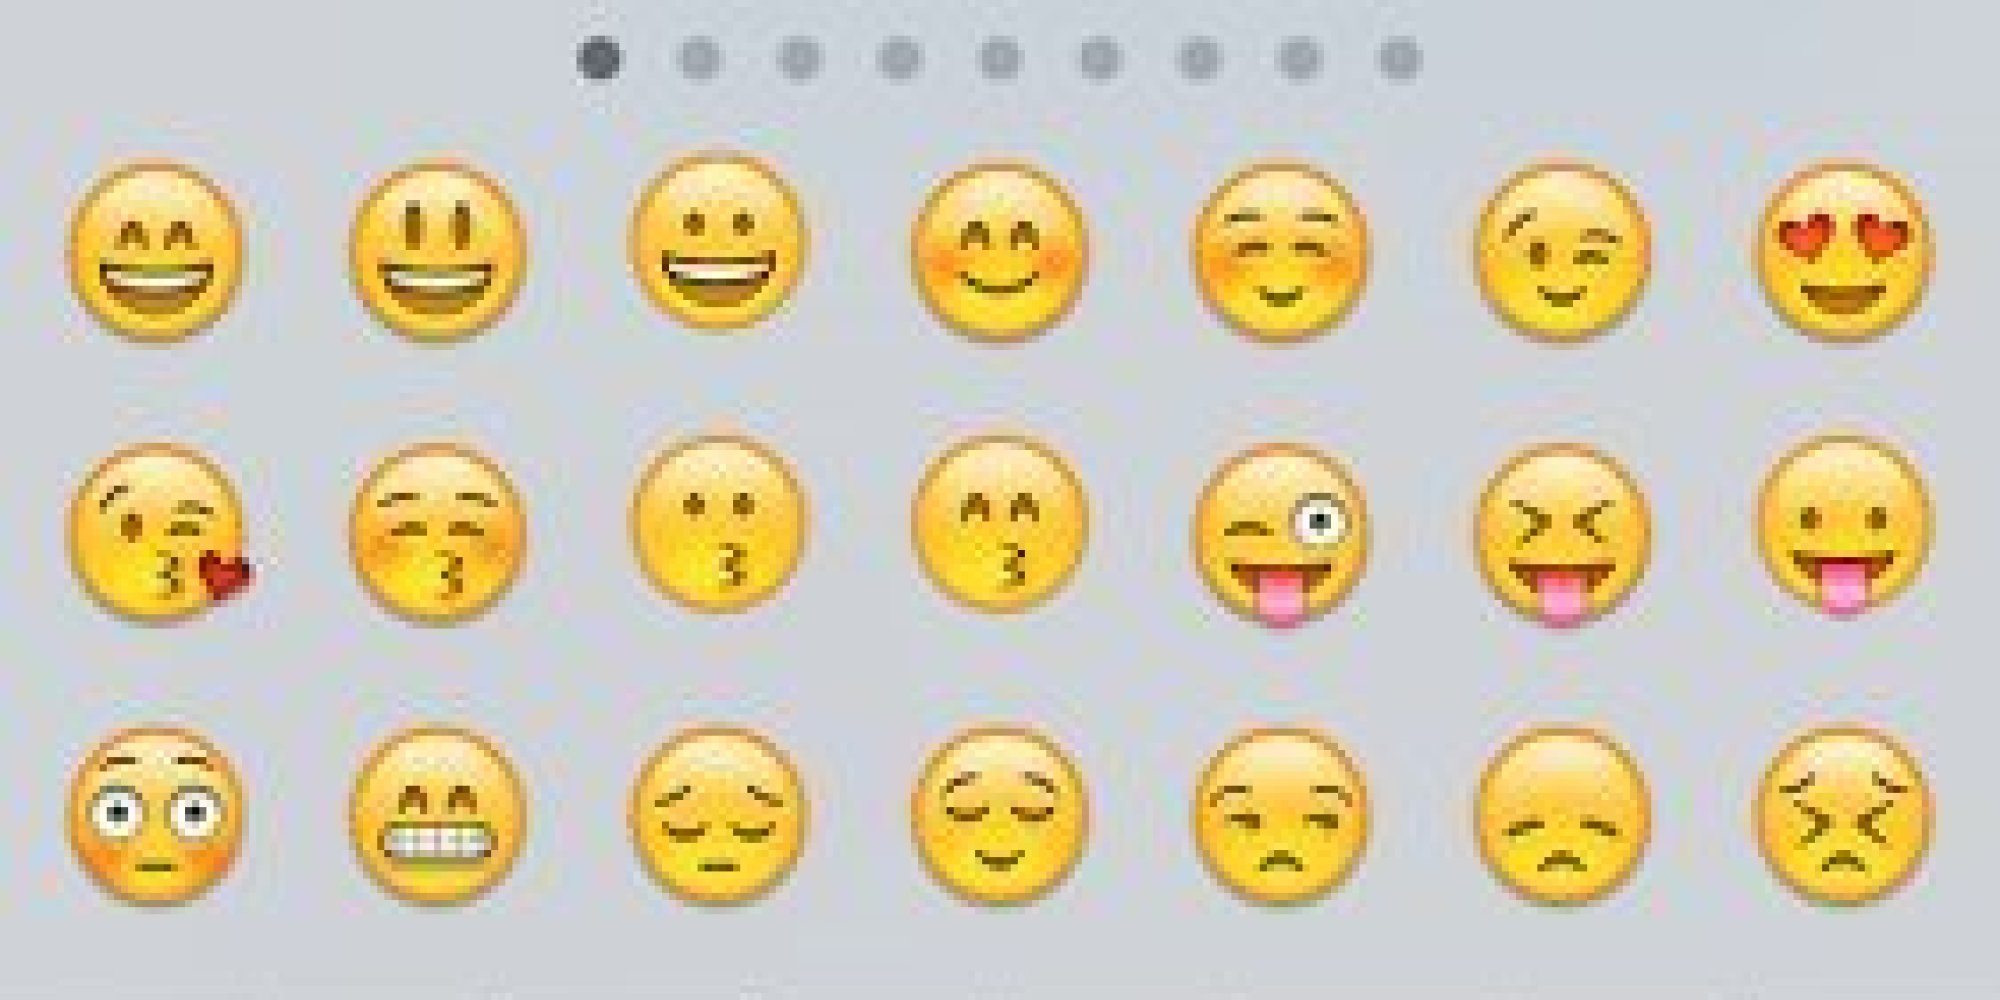 Express Everything In Emoji With This Free iOS 8 Keyboard | HuffPost